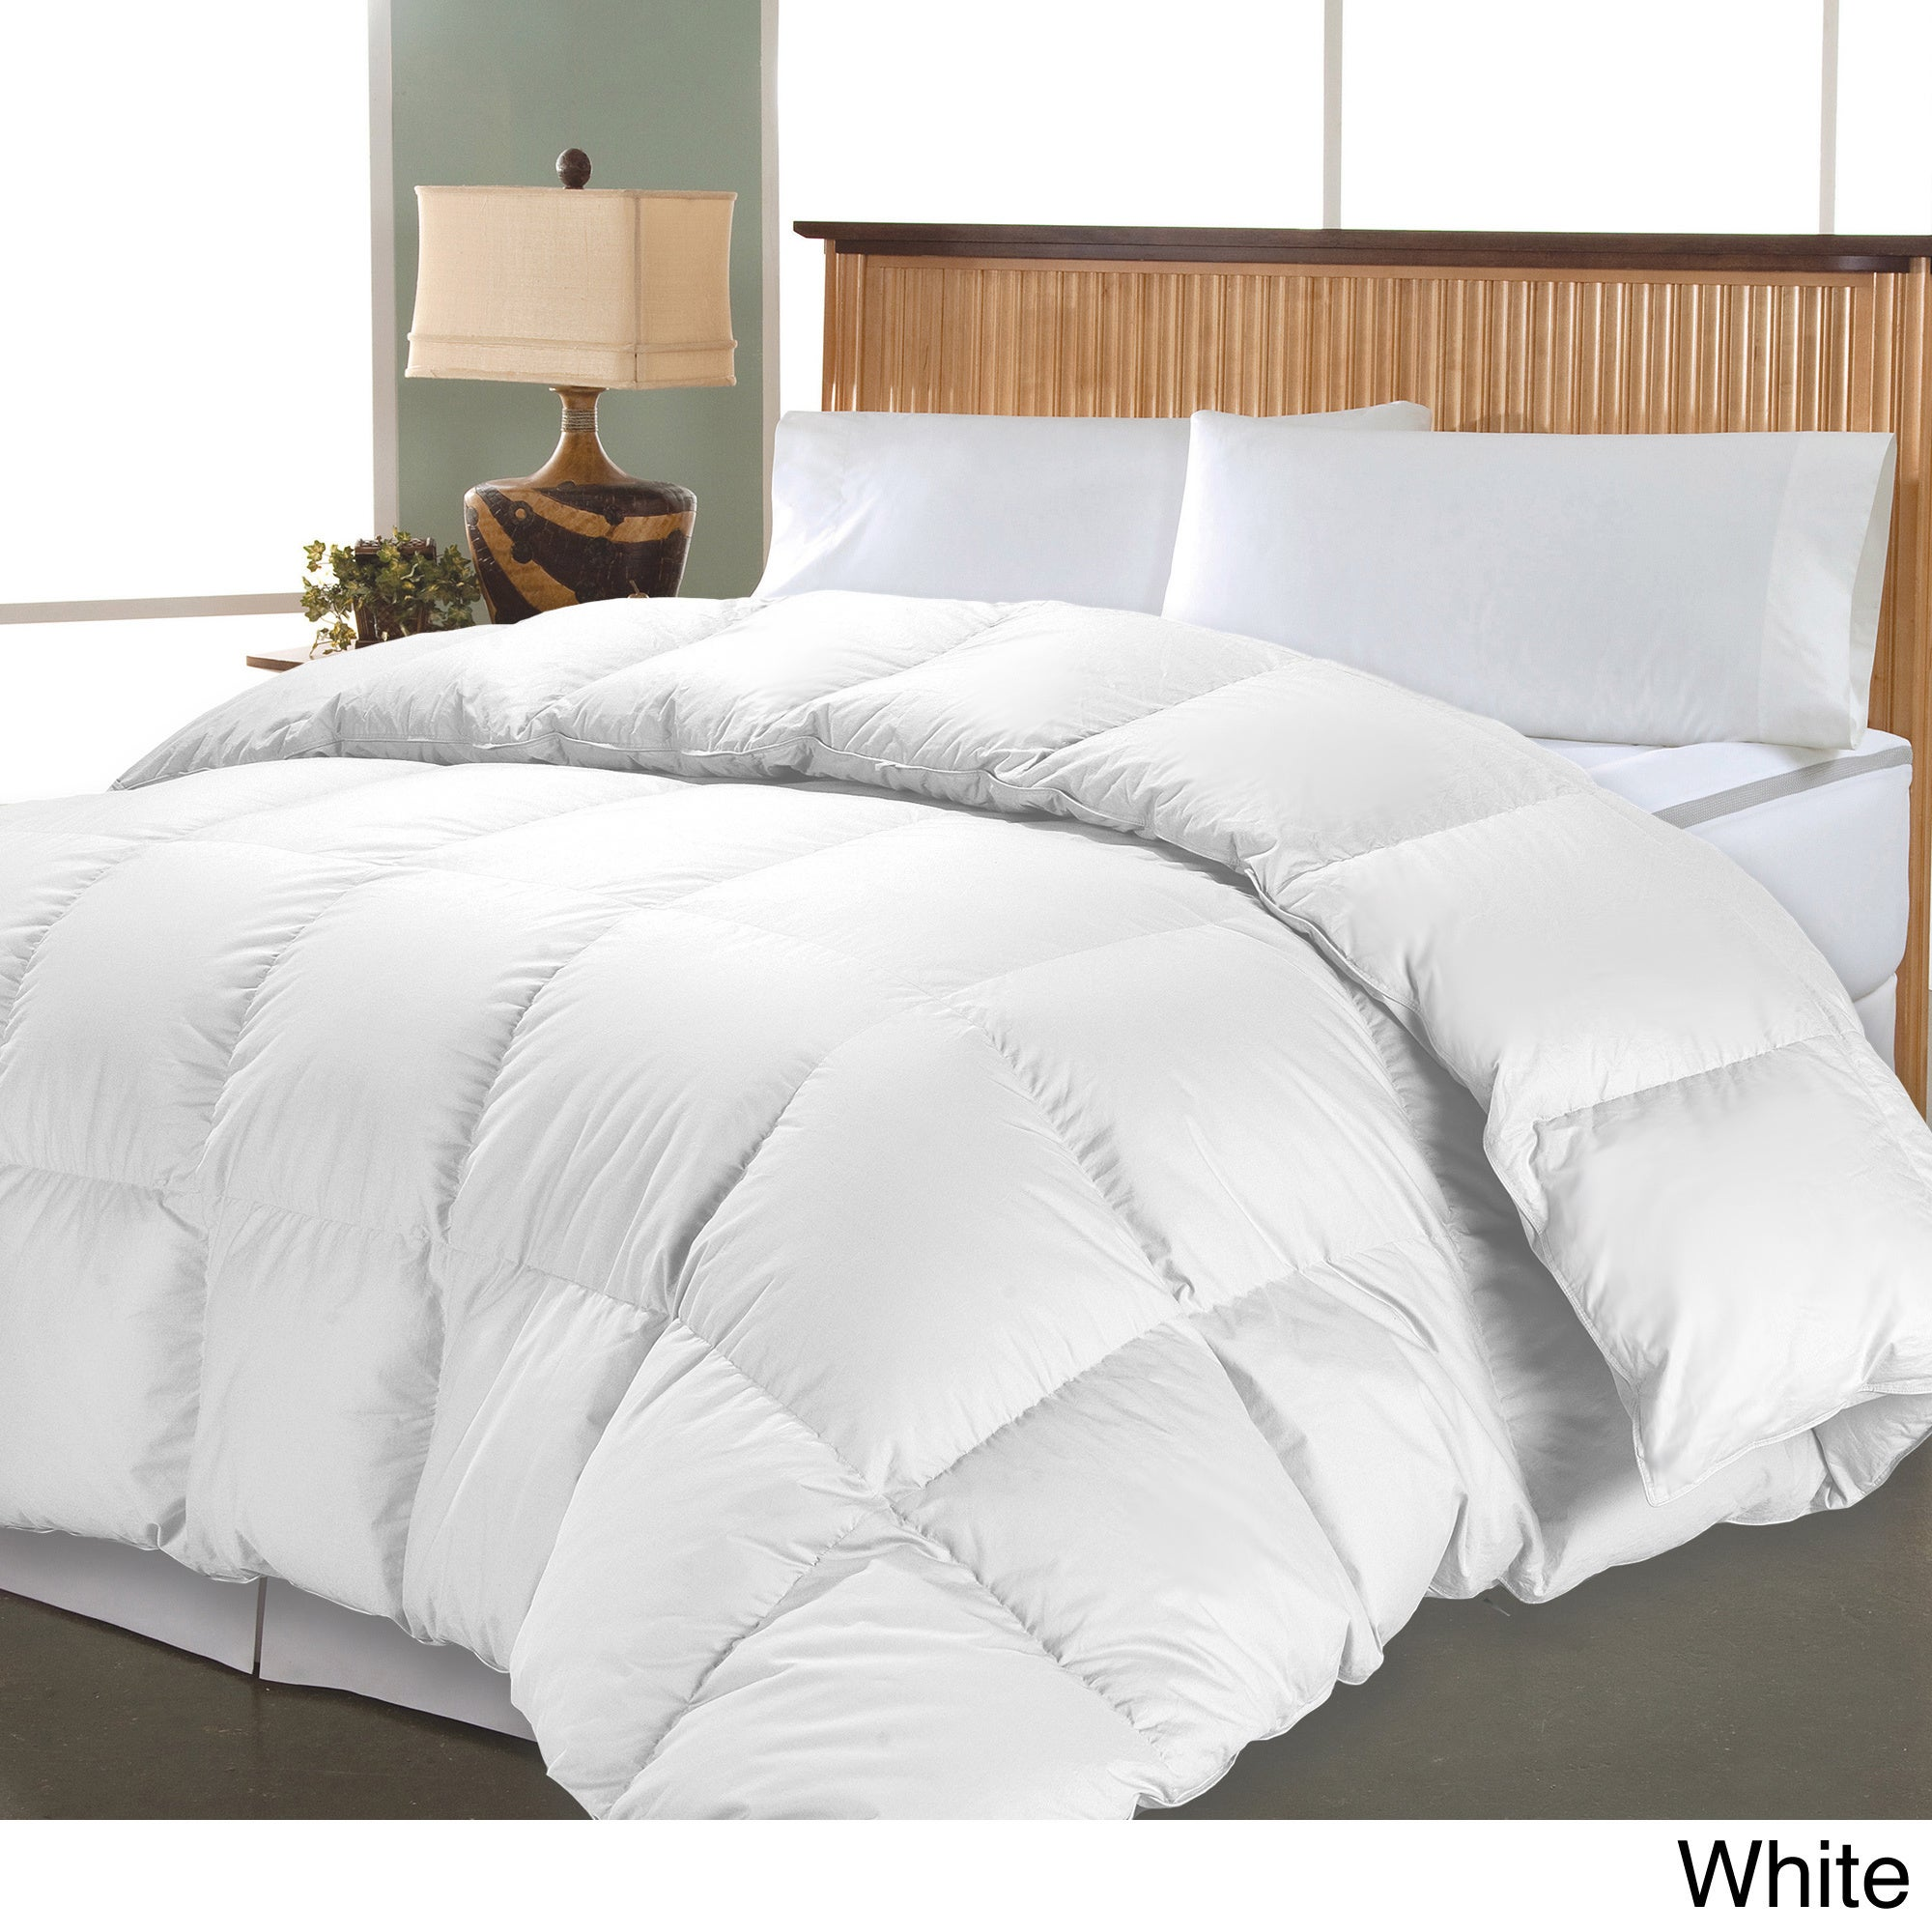 bedding goose german power free today batiste dorchester down overstock bath comforter hungarian fill product shipping white luxury